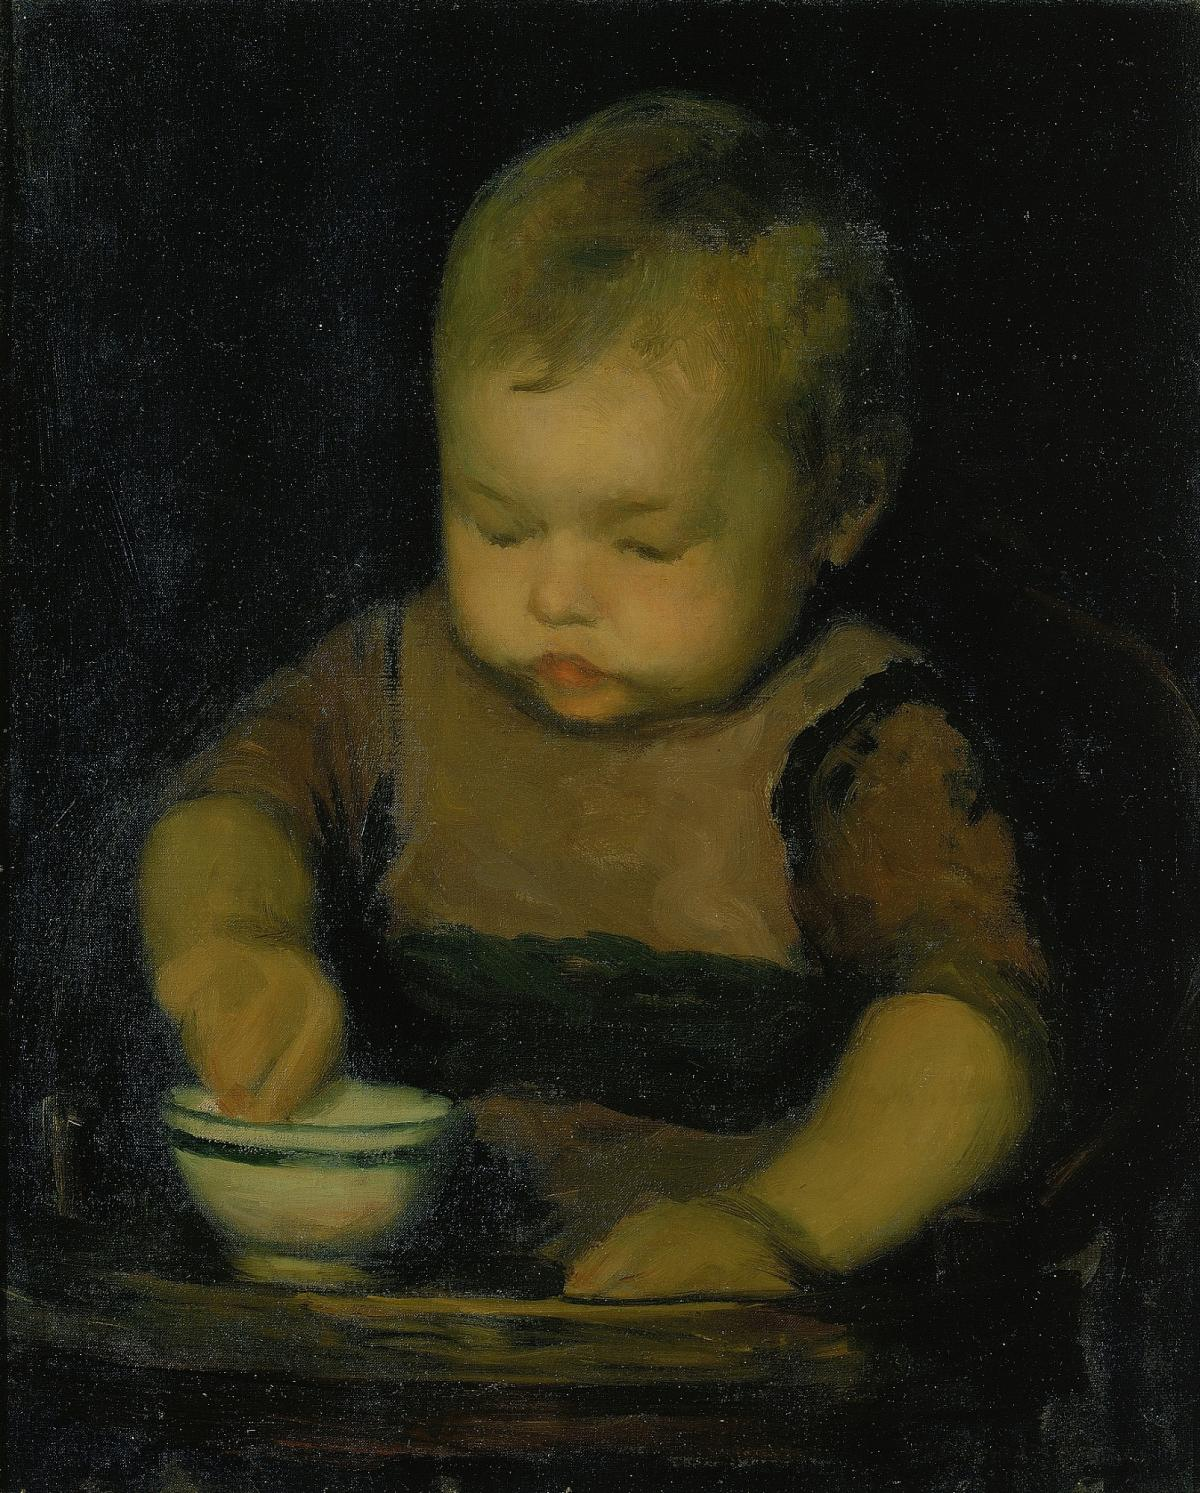 An oil painting of a baby with his hand in a bowl.